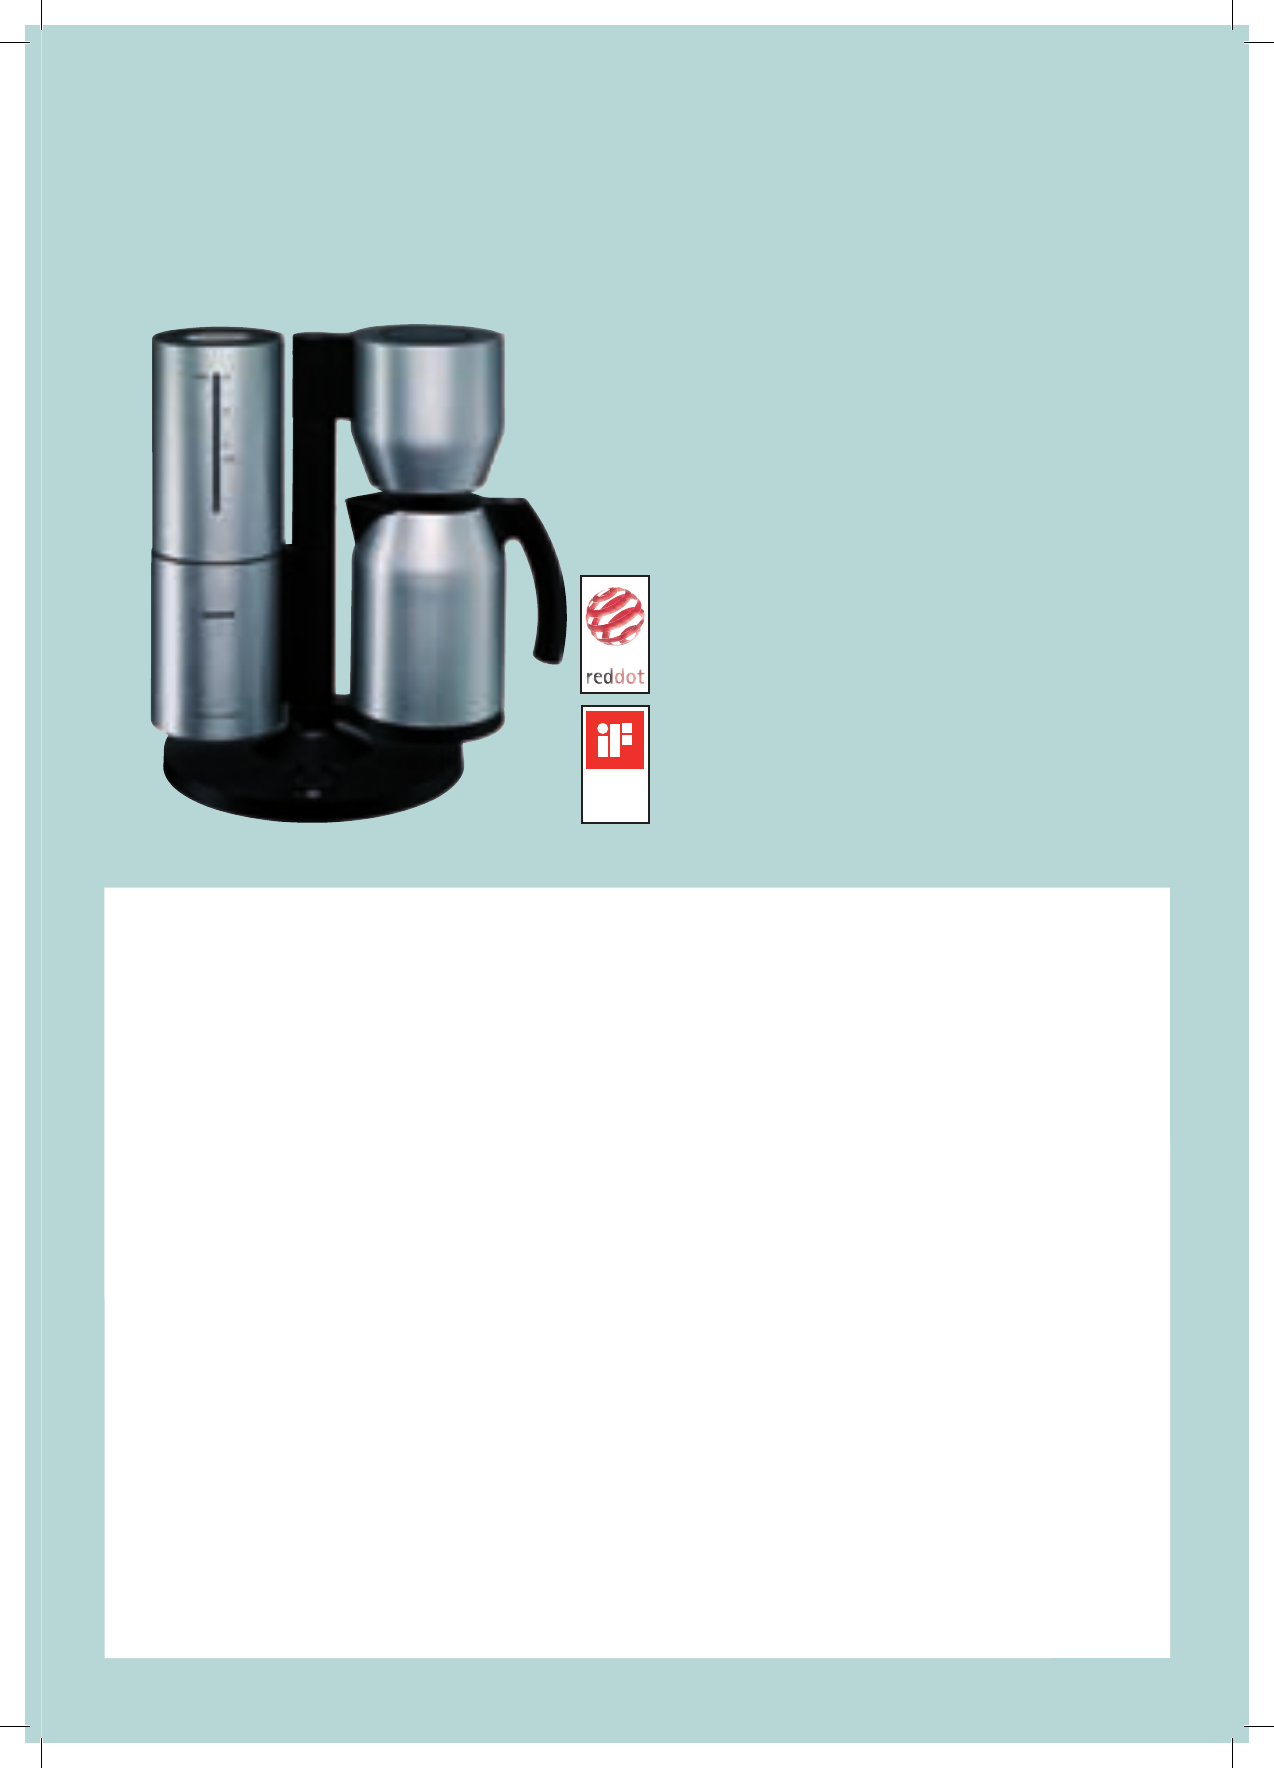 Nespresso Coffee Maker Manual : Page 11 of Nespresso Coffeemaker TK30N01GB User Guide ManualsOnline.com